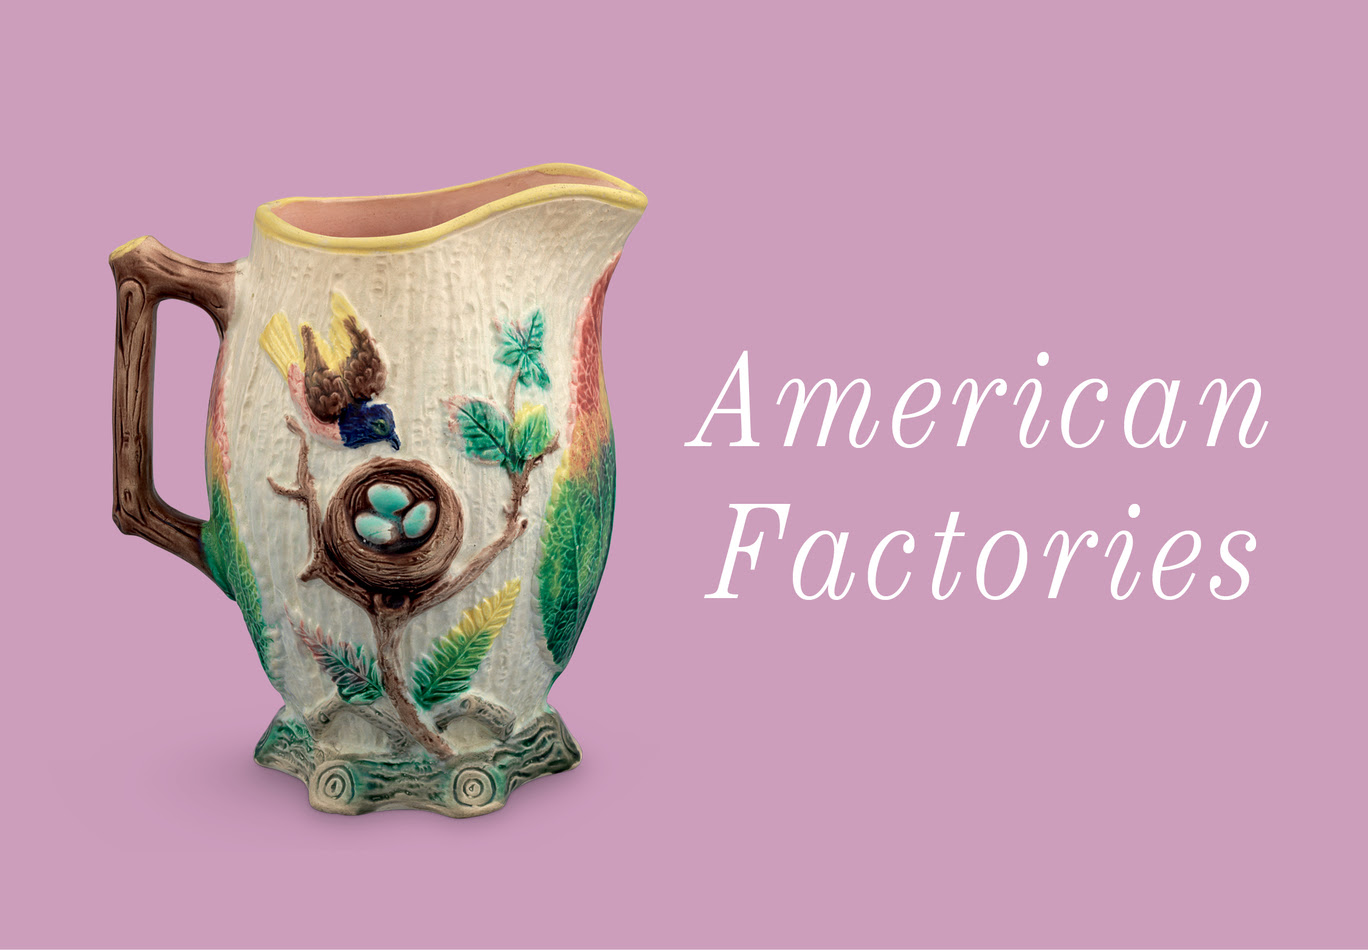 Text: American Factories